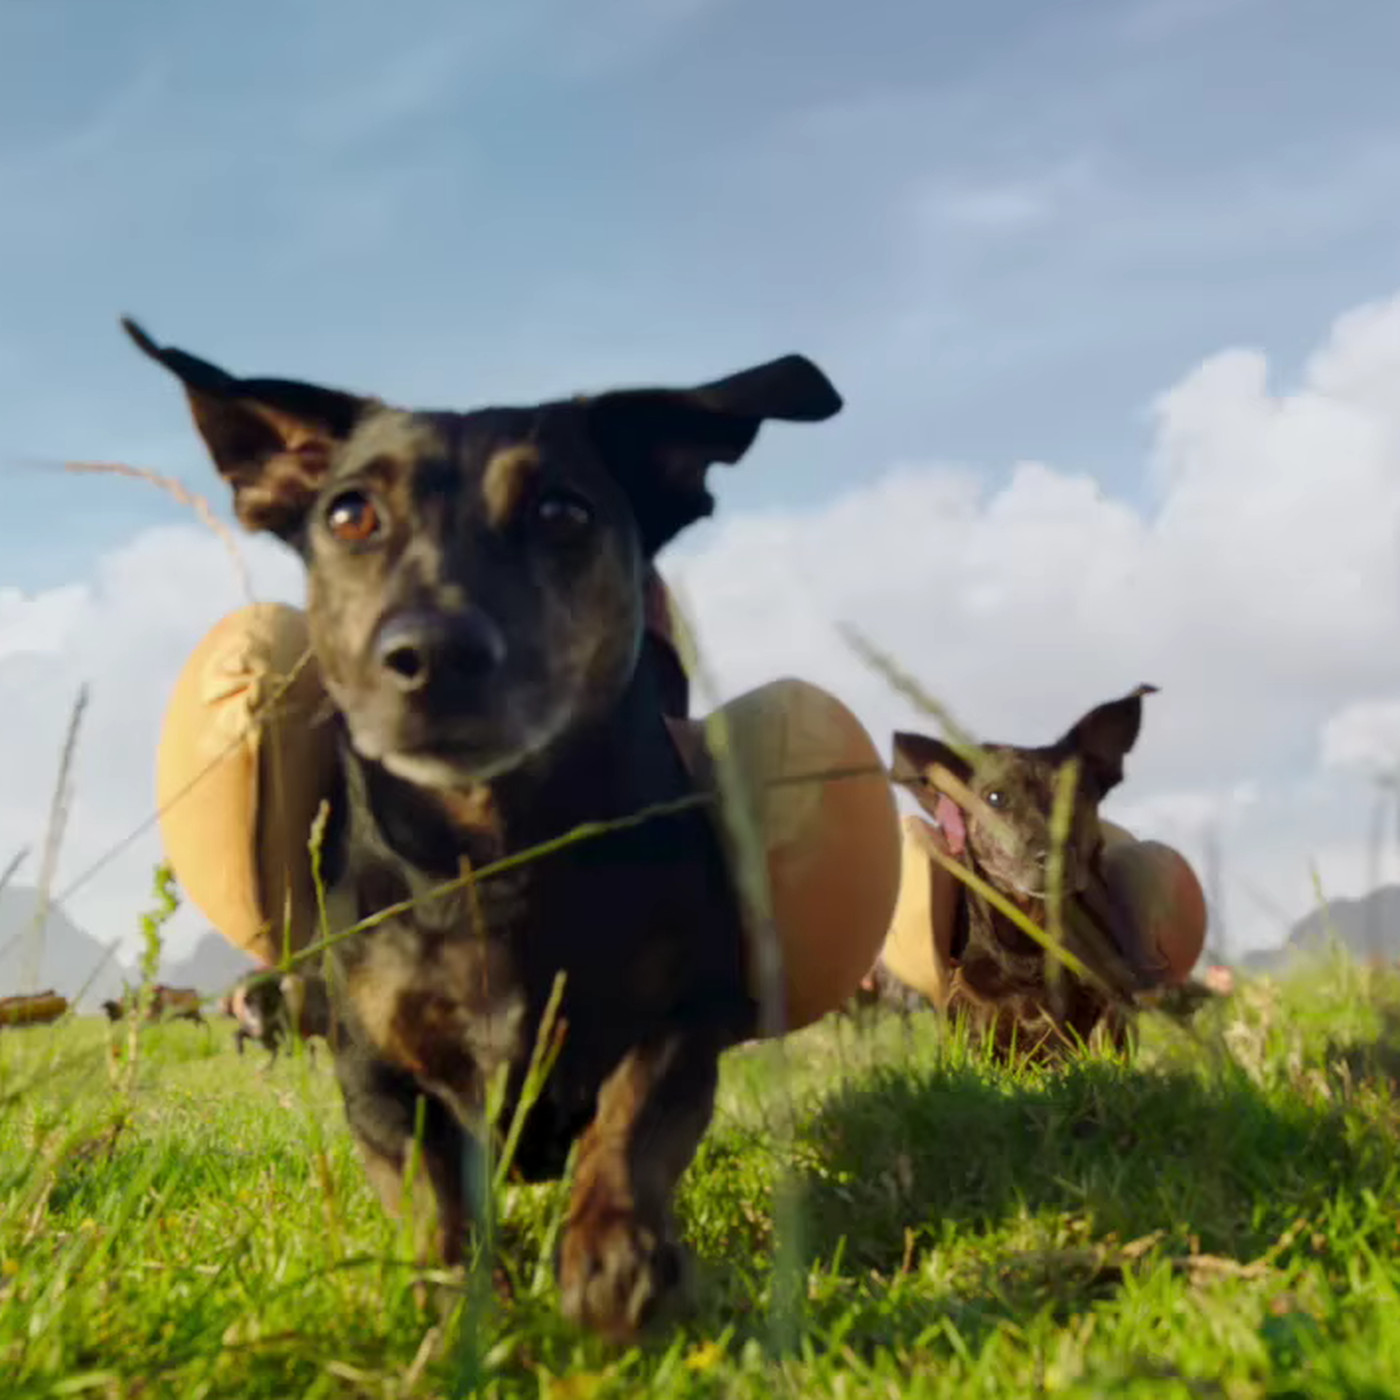 The 10 best Super Bowl 50 commercials — and the two worst